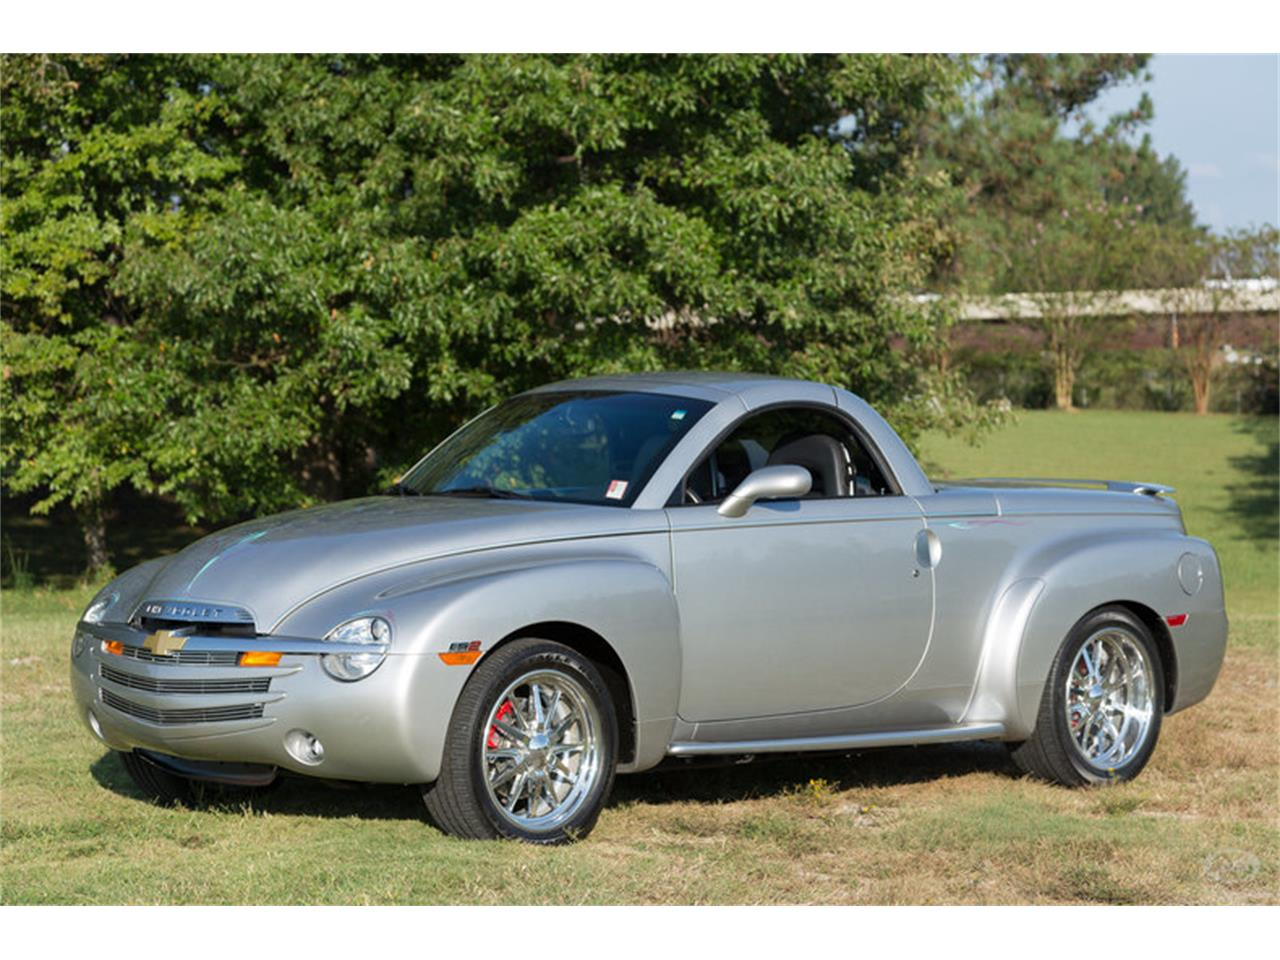 Large Picture of 2005 Chevrolet SSR located in Collierville Tennessee - $29,900.00 - M6SY